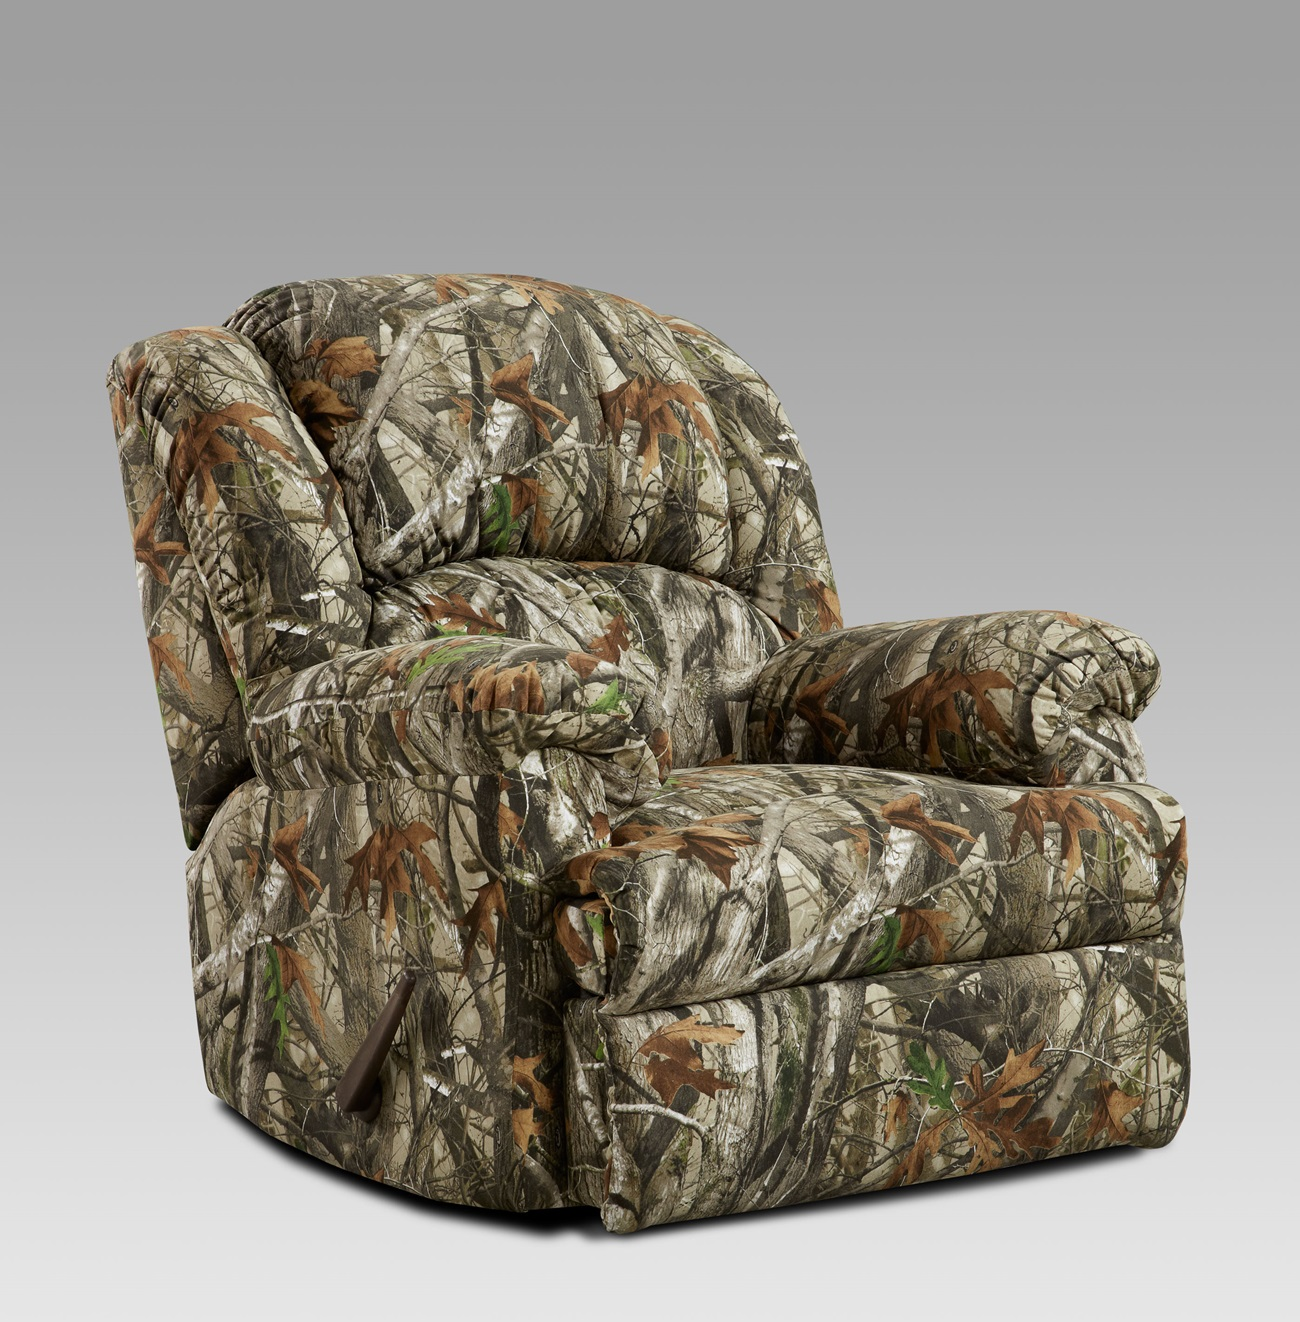 Camo Recliner Chair Next Camouflage Fabric Rocker Recliner Camo Reclining Arm